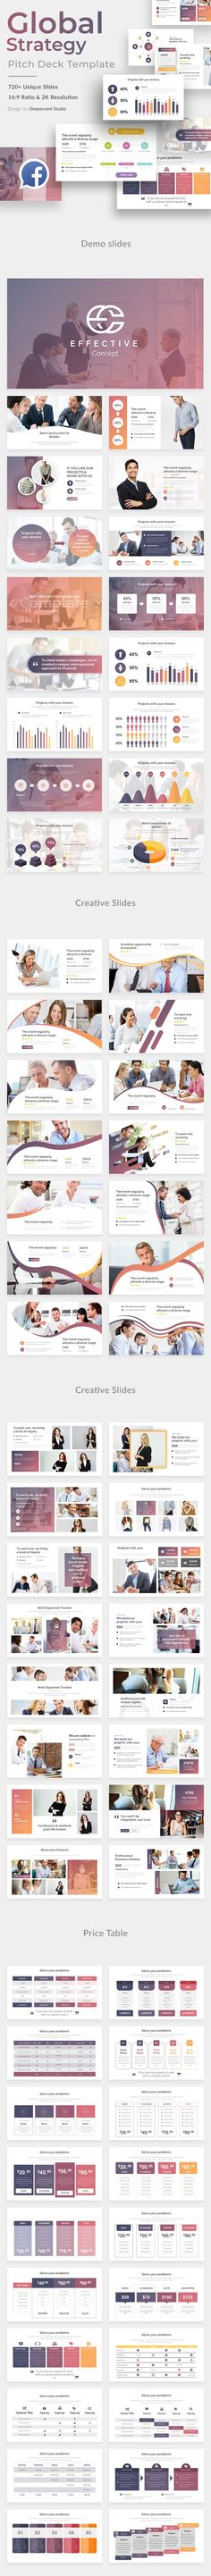 Global Strategies 3 in 1 Pitch Deck Bundle Powerpoint Template Business Presentation by onepercent. Business Presentation Templates, Presentation Slides, Business Templates, Pitch Deck, Slide Template, Creative Powerpoint Templates, Keynote Template, Infographic, Photoshop